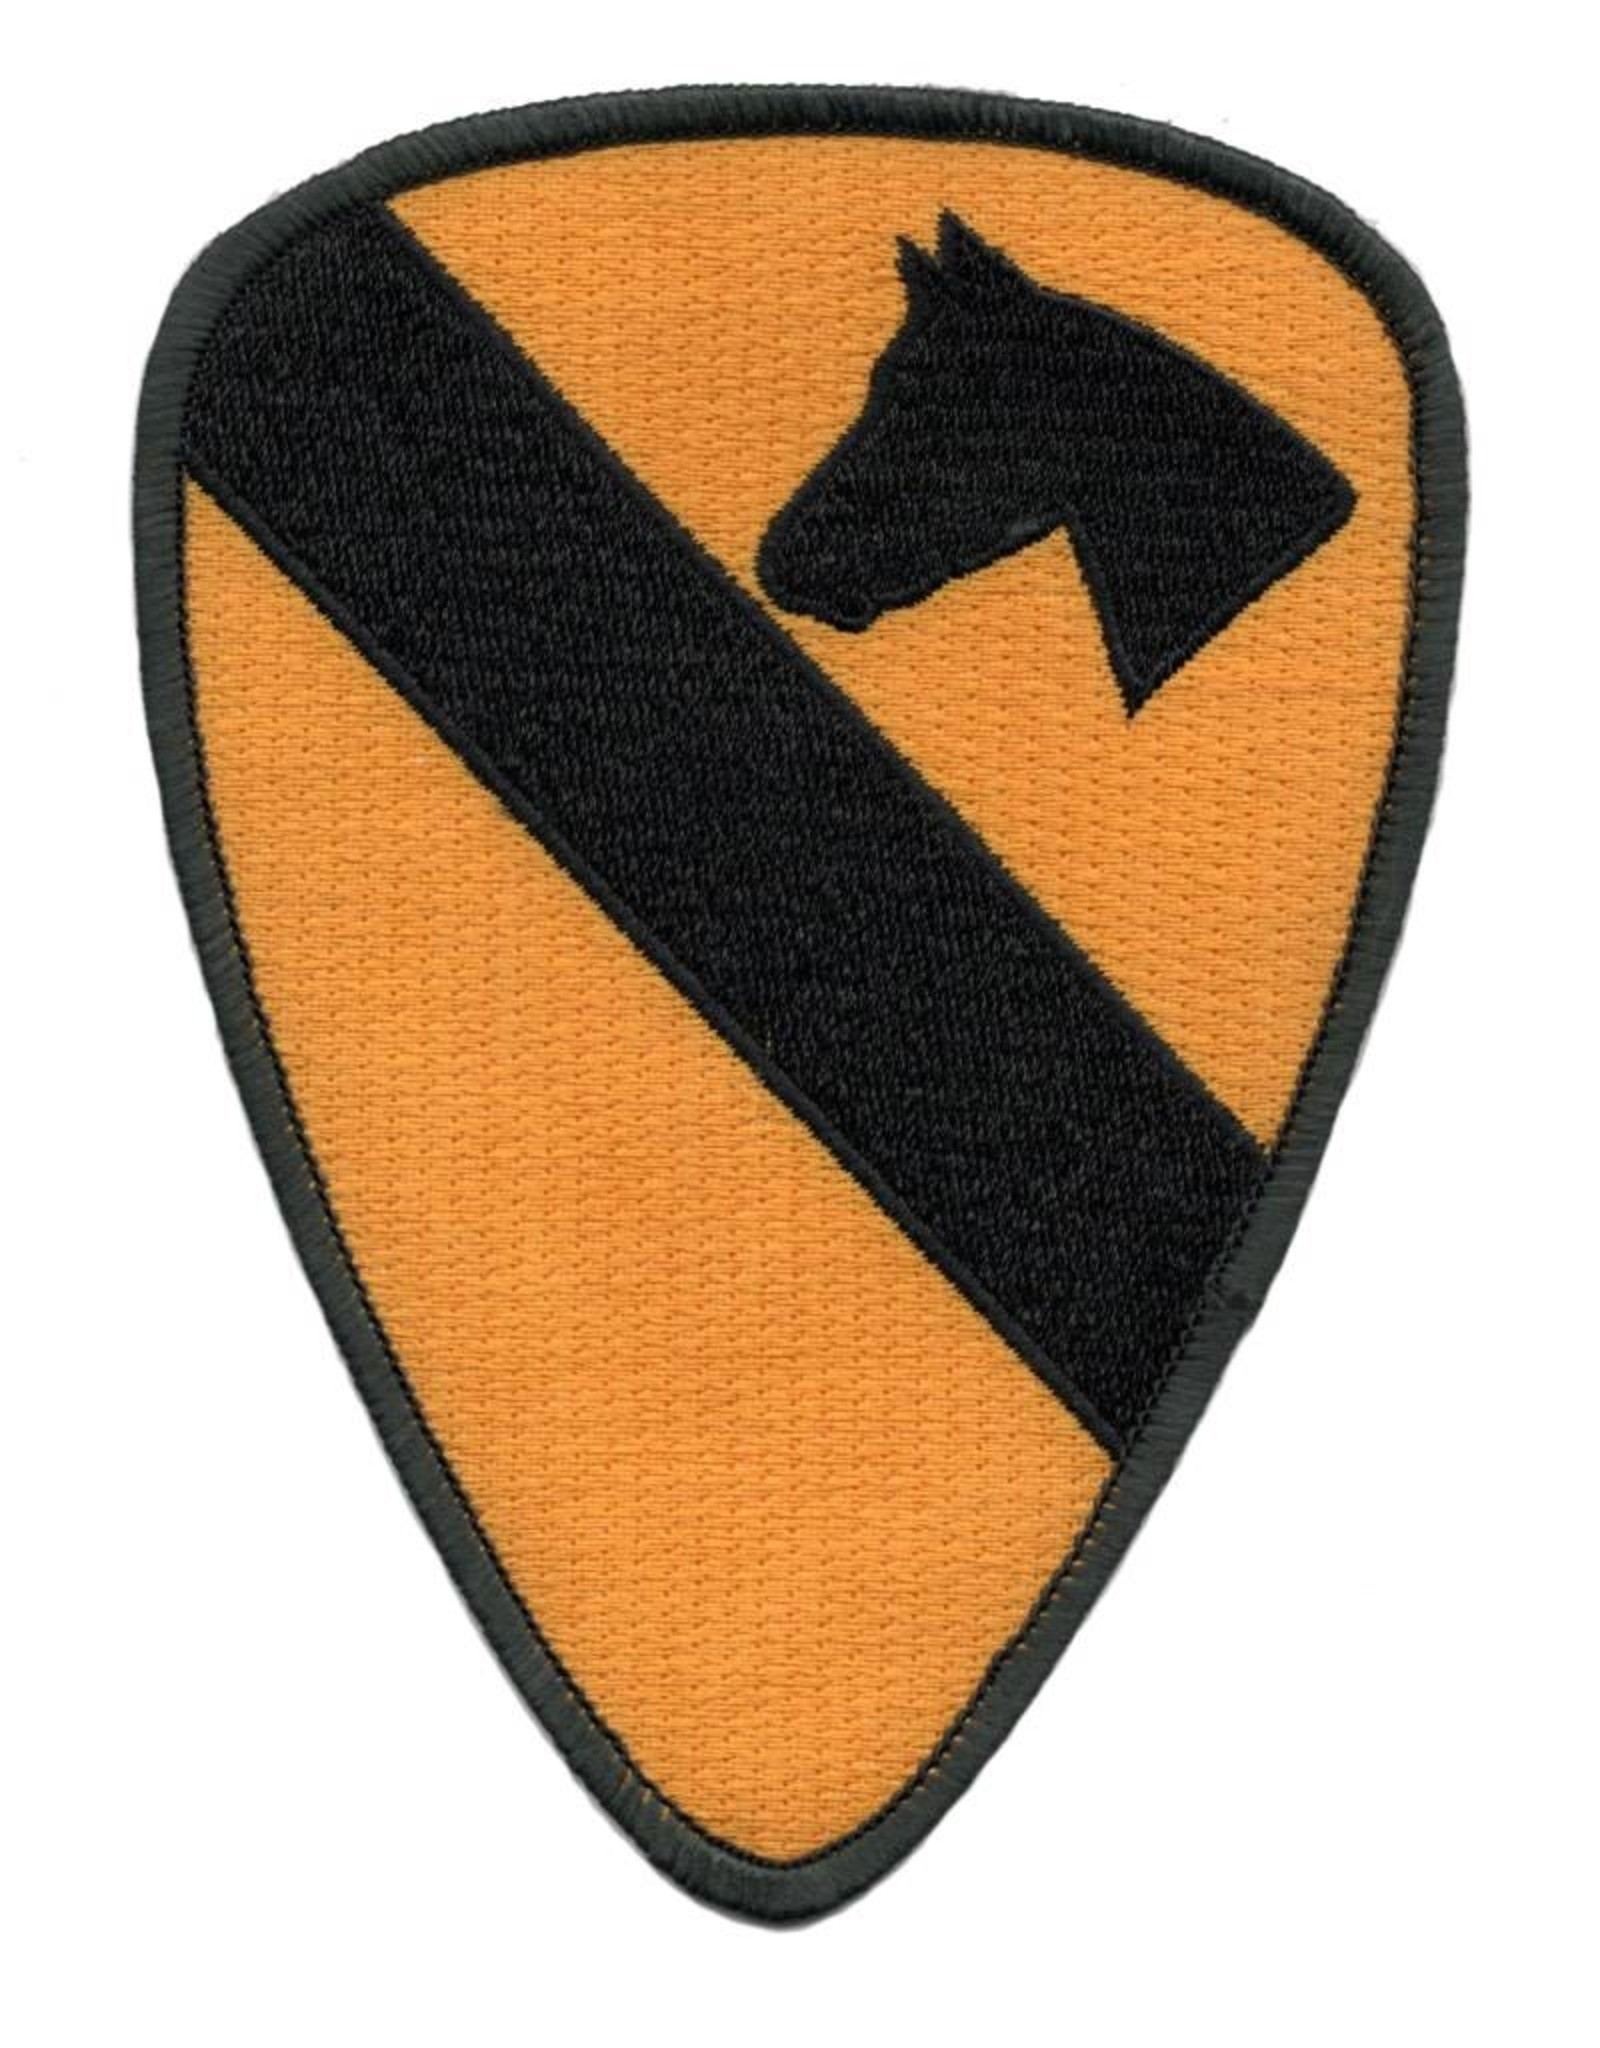 "MidMil Embroidered 1st Cavalry Division Emblem Patch. 3.9"" wide x 5.4"" high"